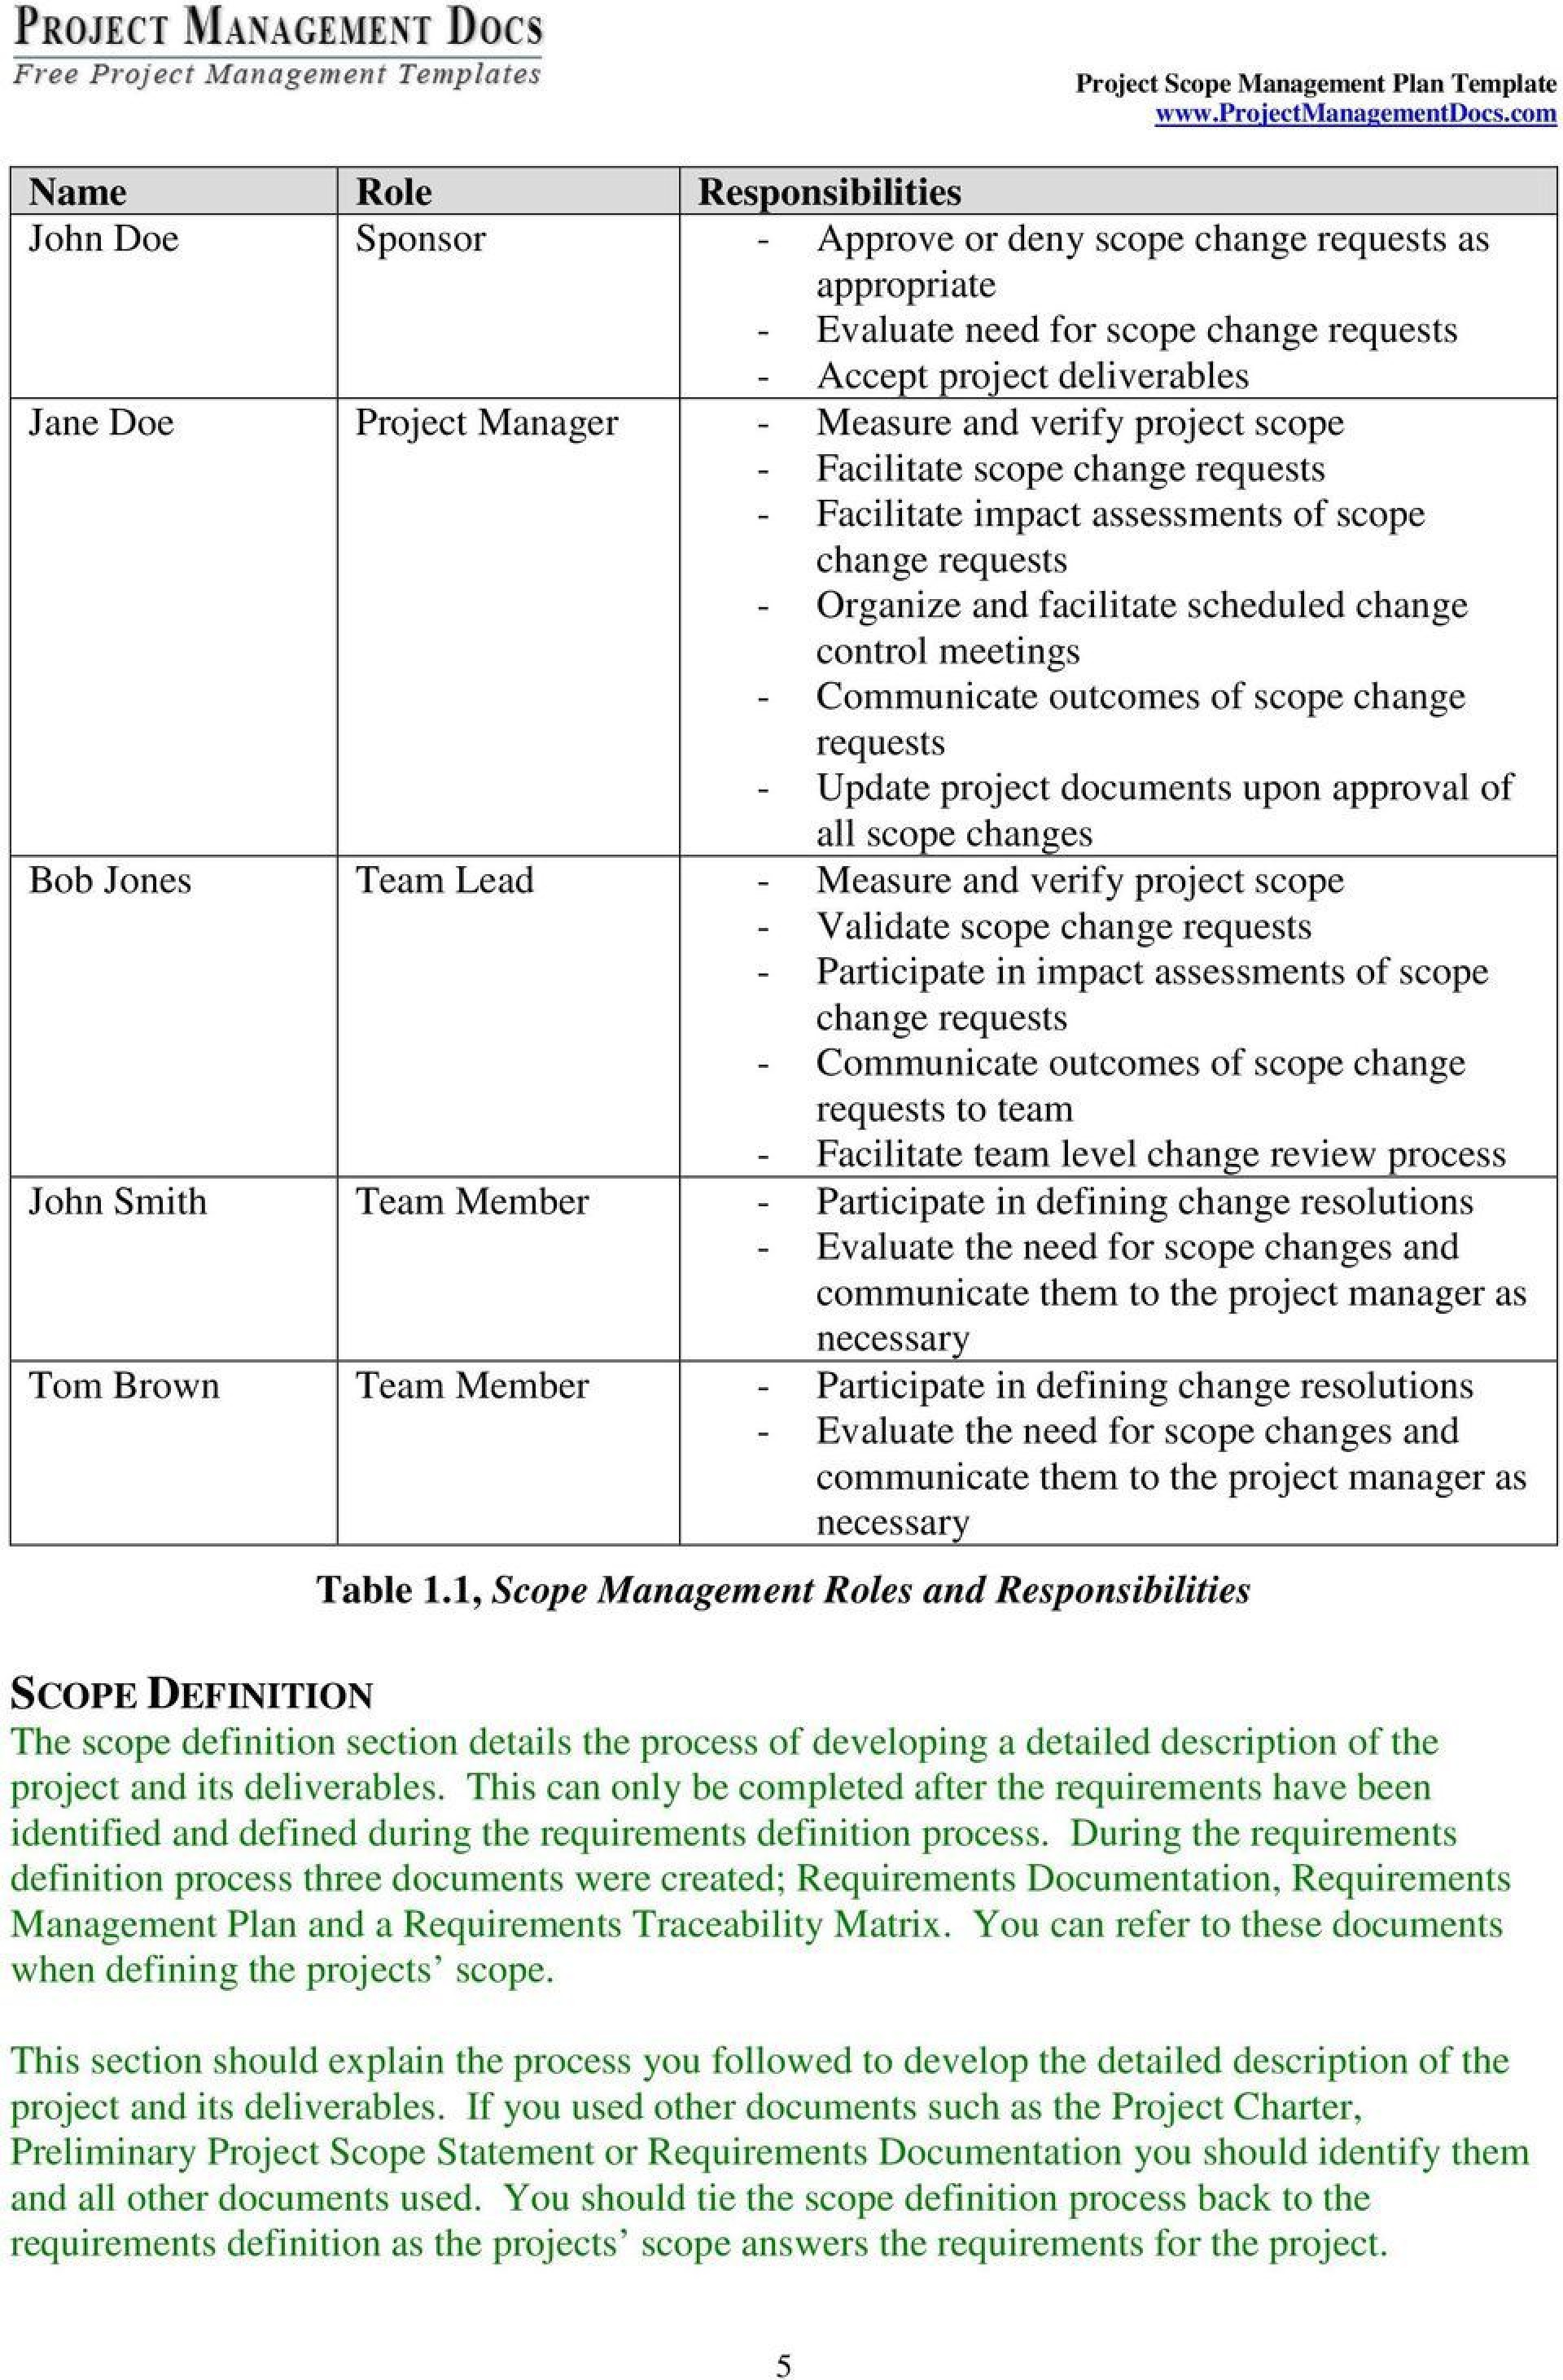 005 Wonderful Project Scope Management Plan Template Free High Resolution 1920